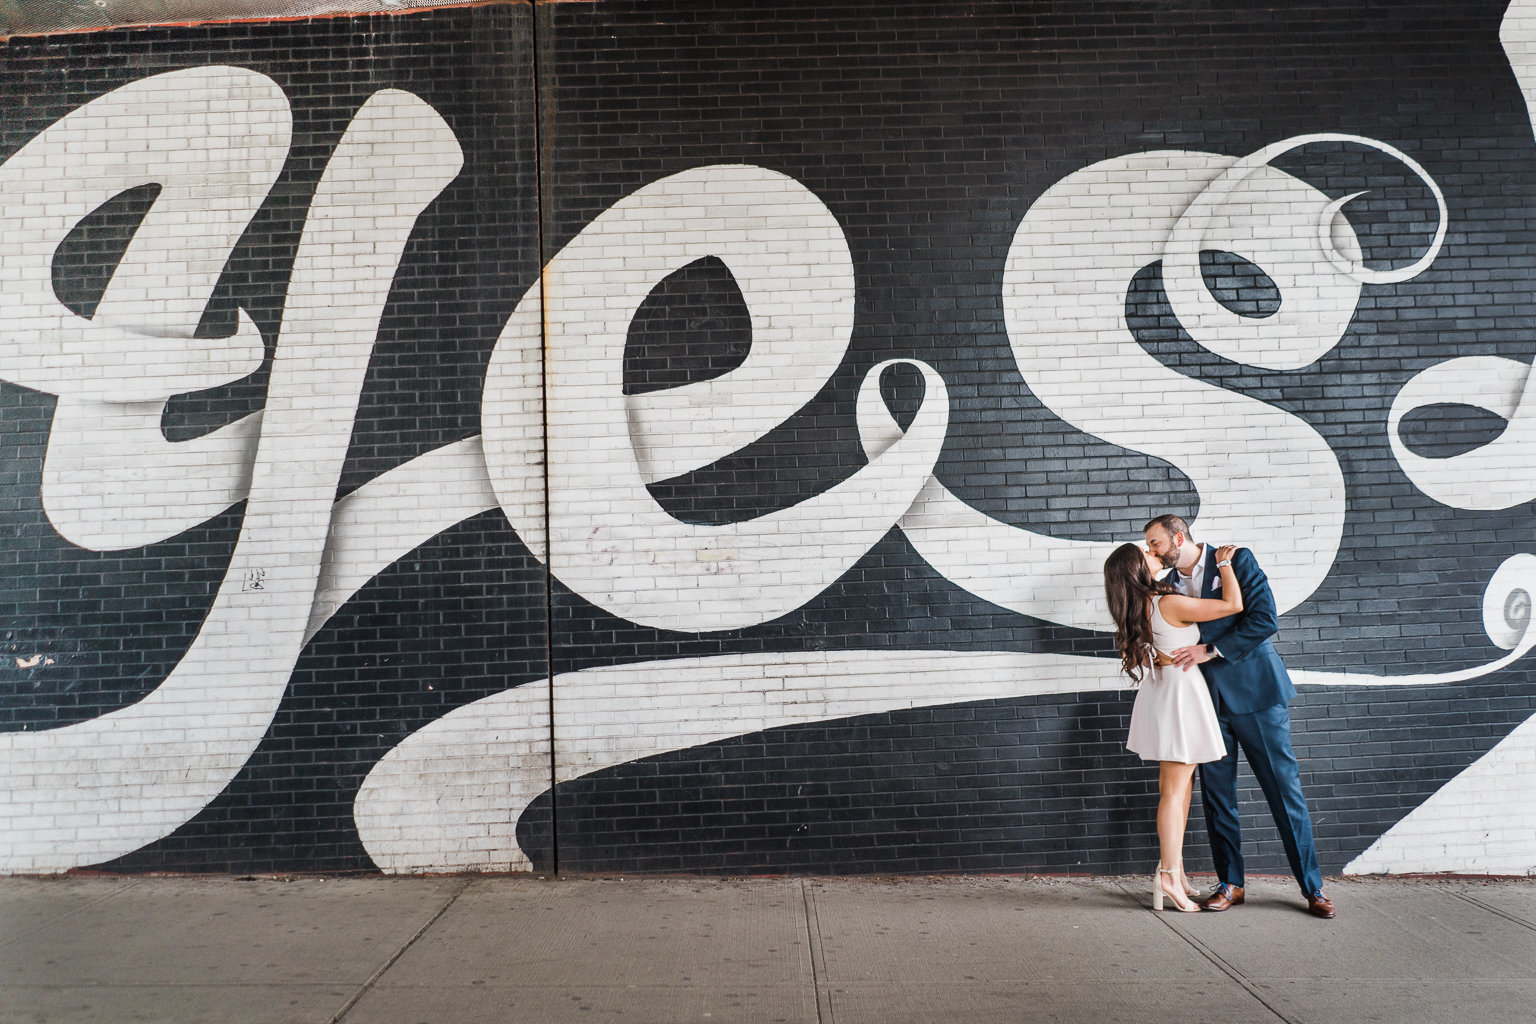 dumbo-brooklyn-nyc-new-york-engagement-session-lifestyle-photography-wedding-photographer-mural-yes